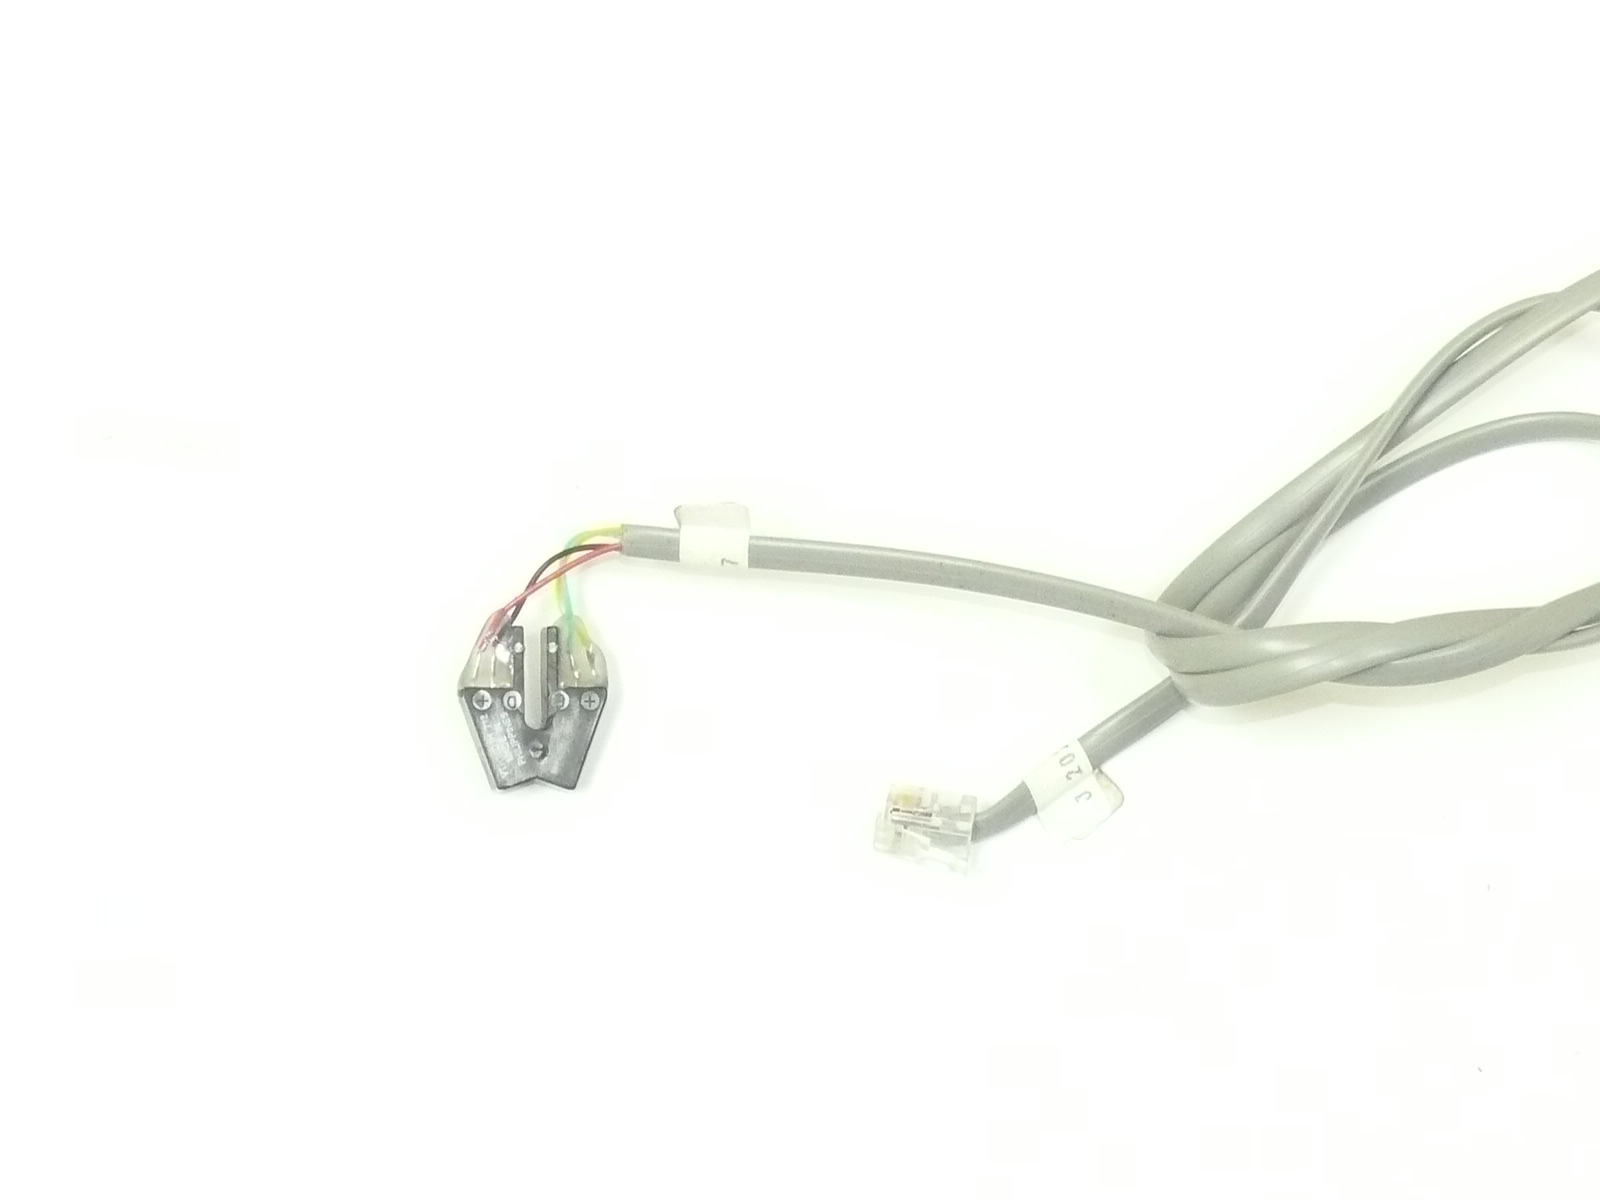 083380 -  - CABLE ASSY RIBBON SENSOR